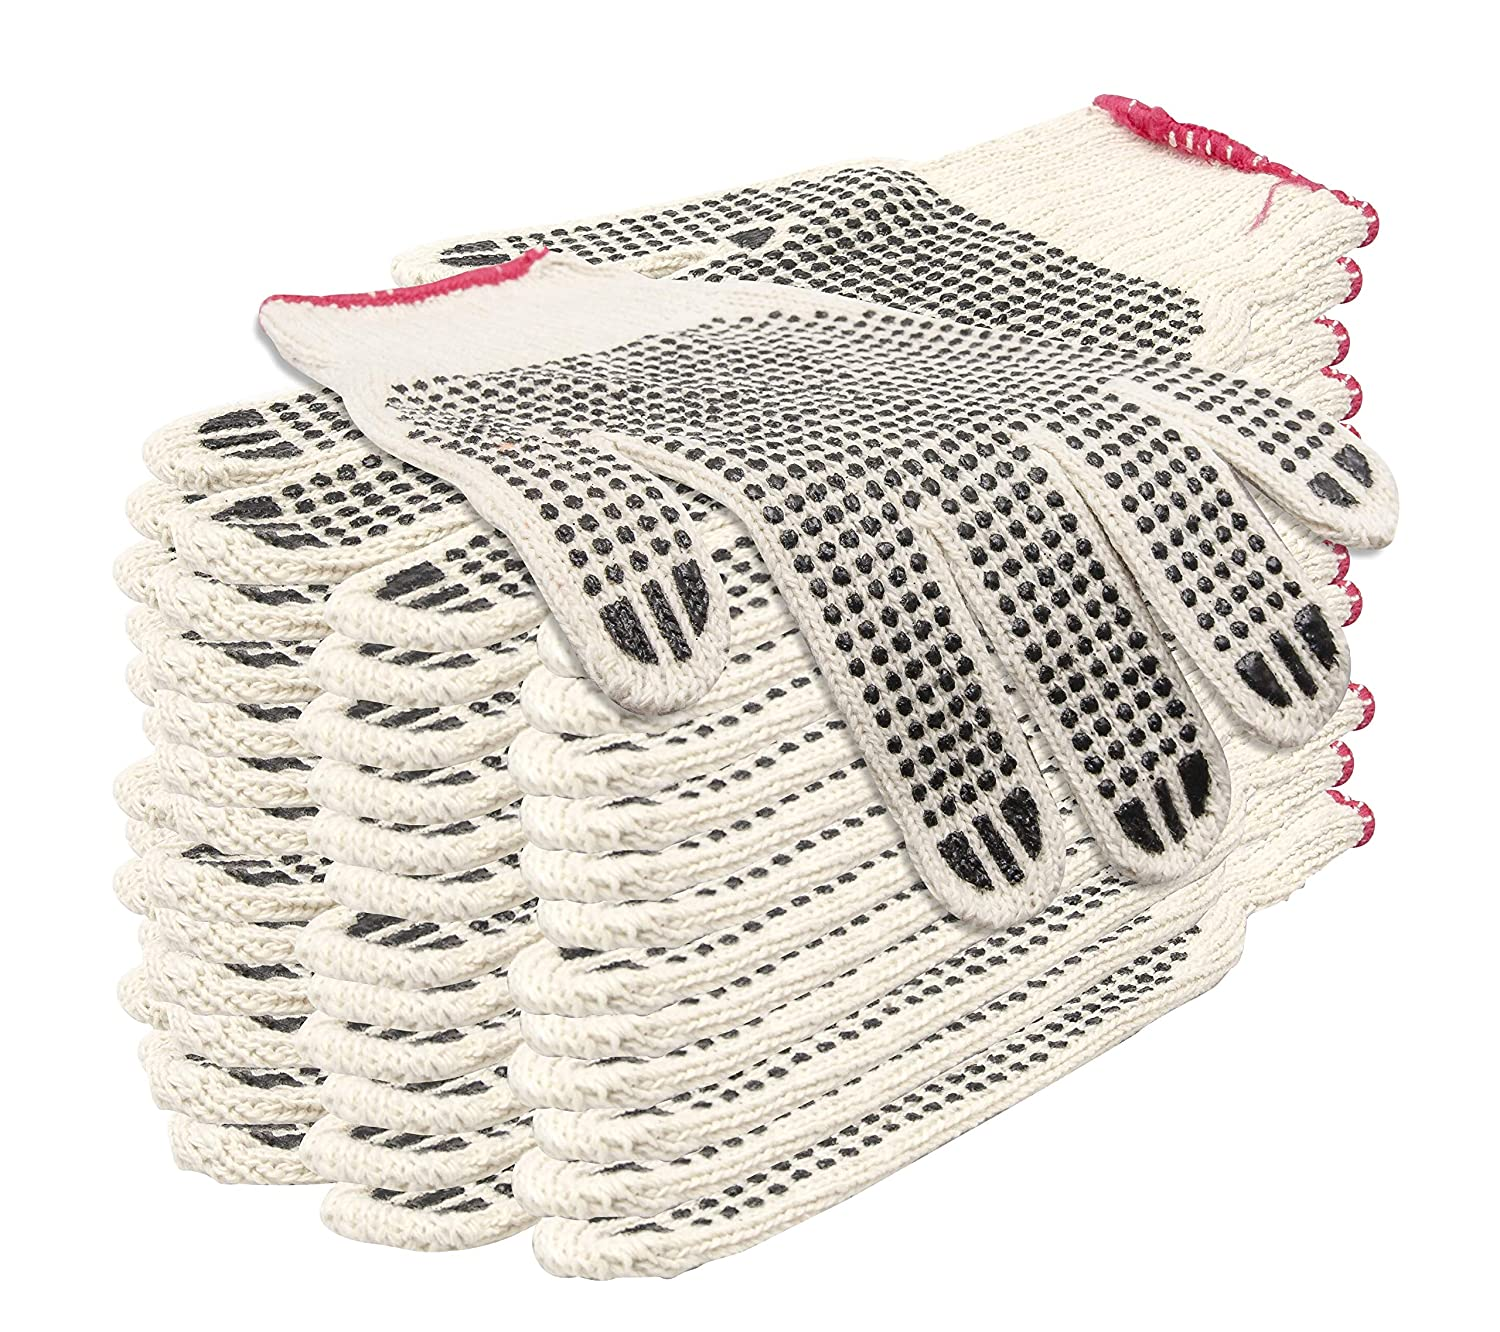 12 Pack PVC Single Side Dot String gloves for Men. Protective String Knit Gloves with Plastic Dot Coating. Medium Weight Gloves. Knitted Cotton Polyester Gloves for General Purpose. Comfortable fit.